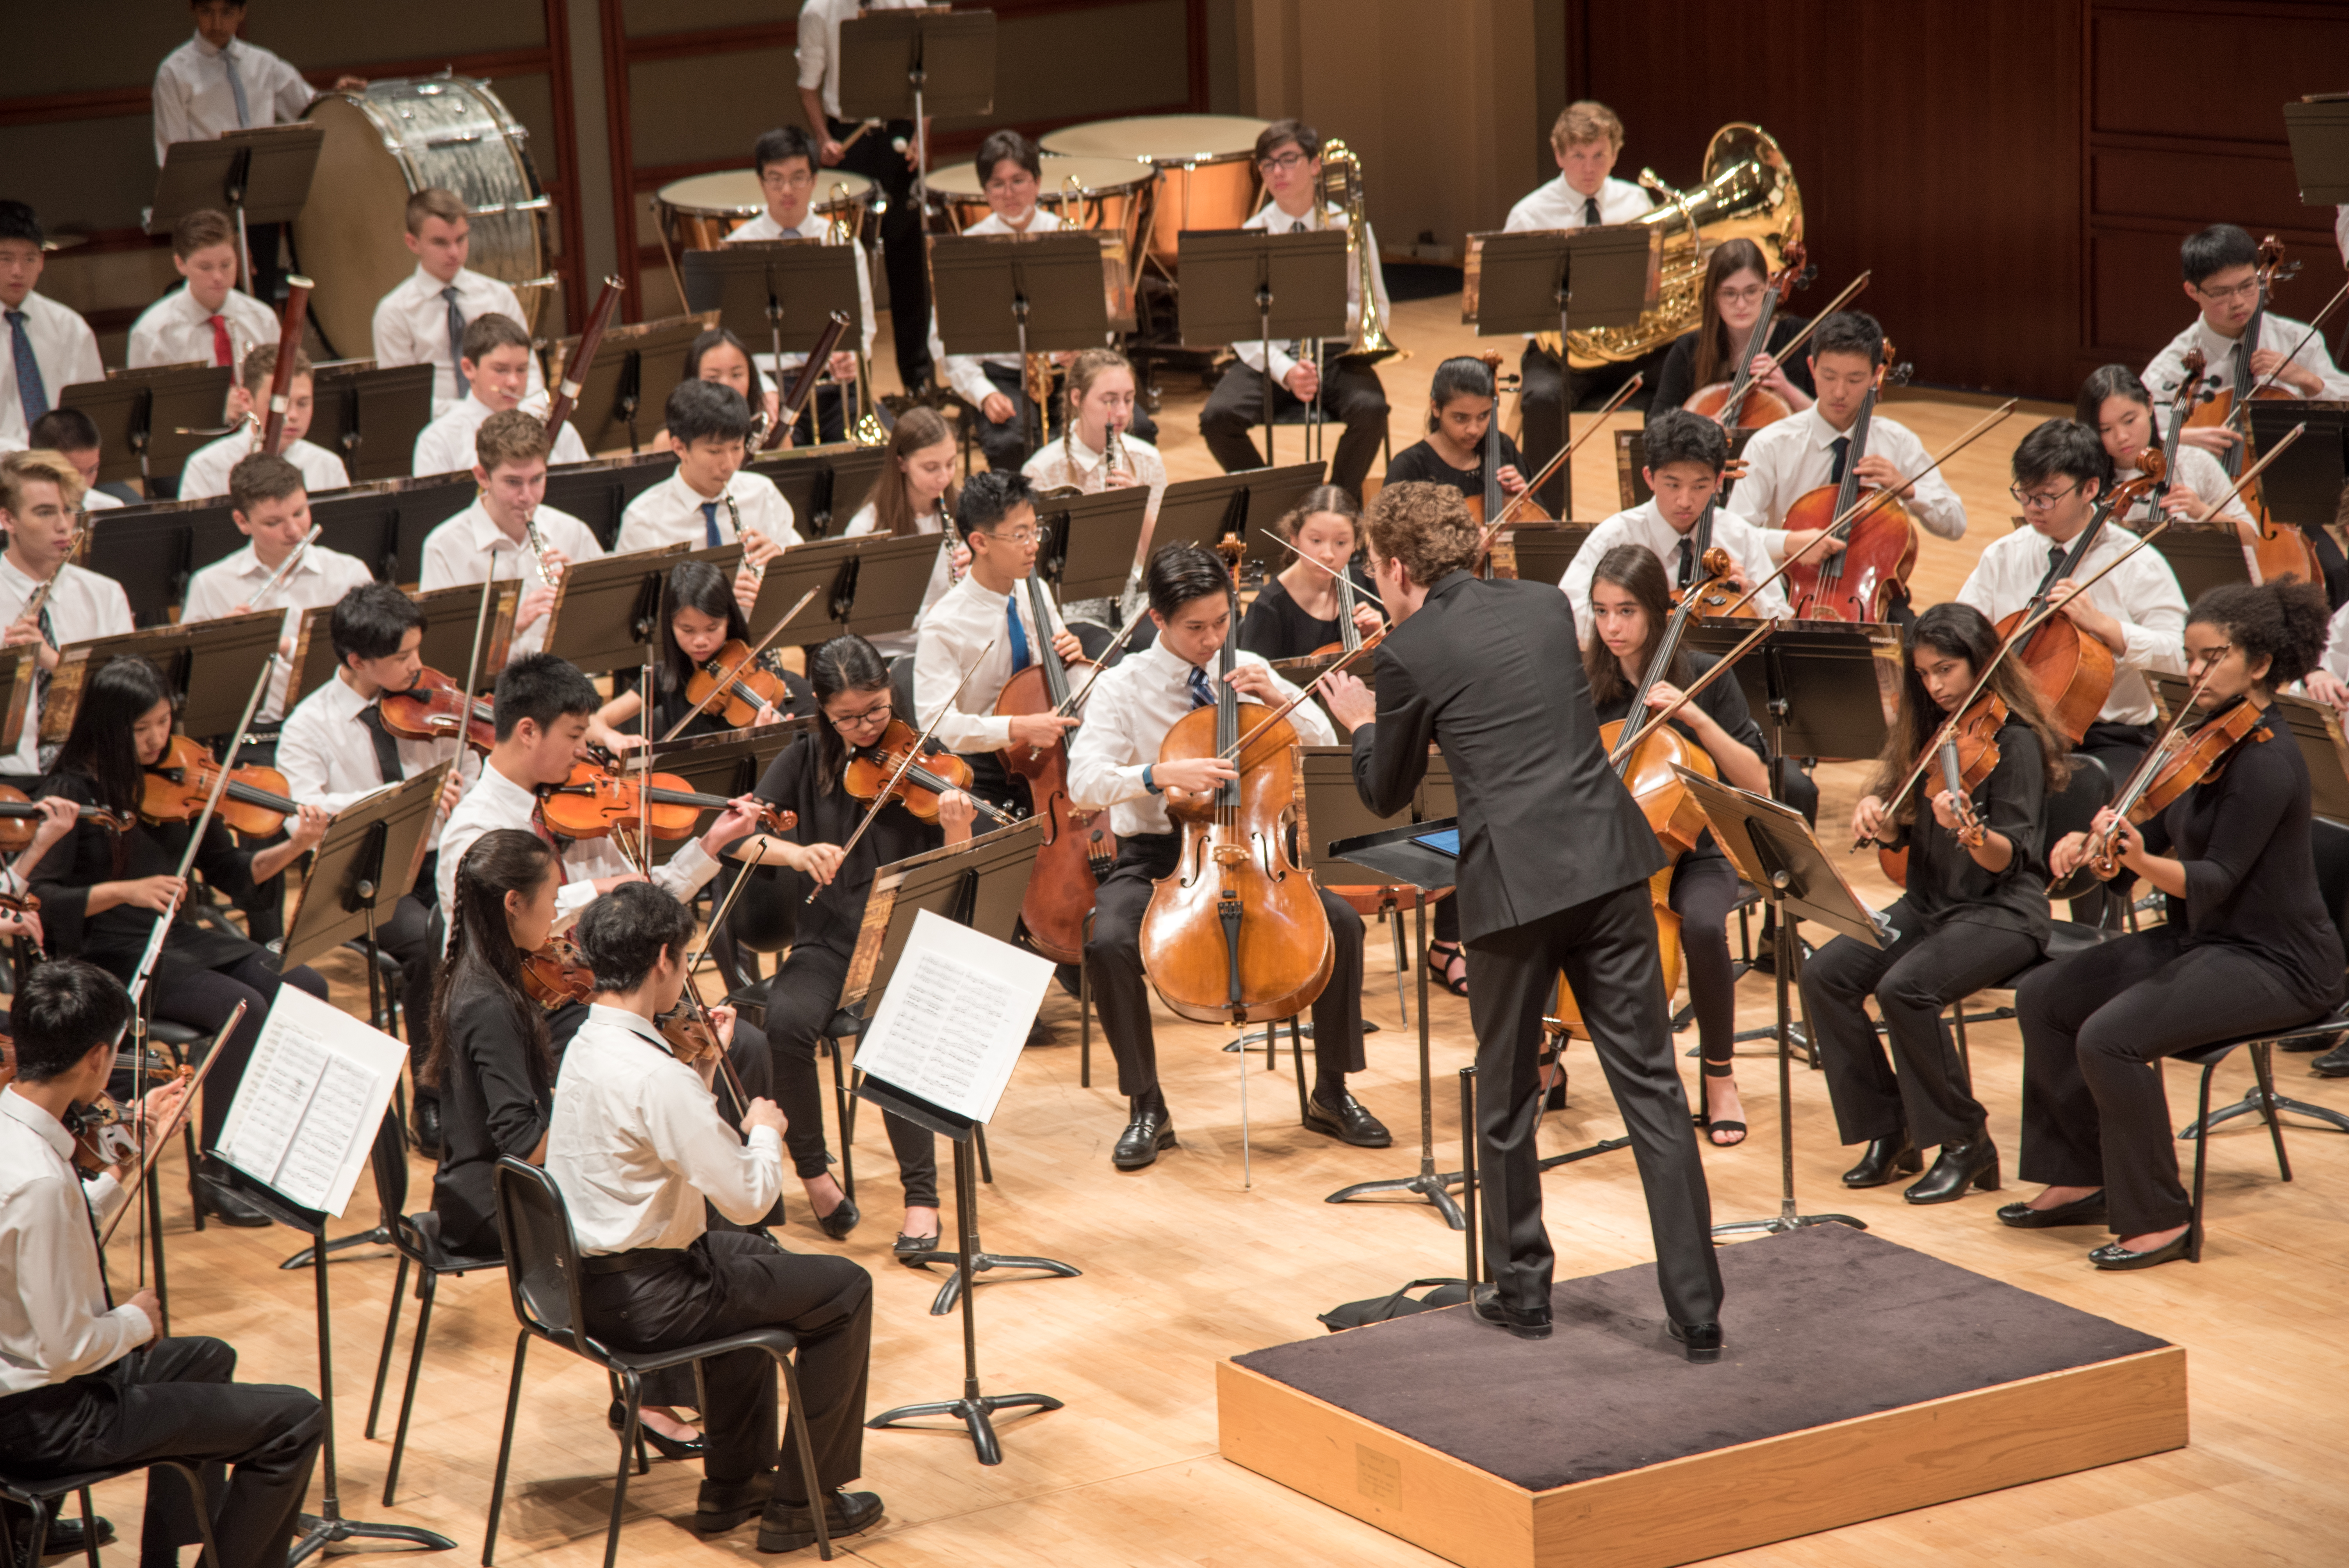 David Glover conducts the Triangle Youth Philharmonic